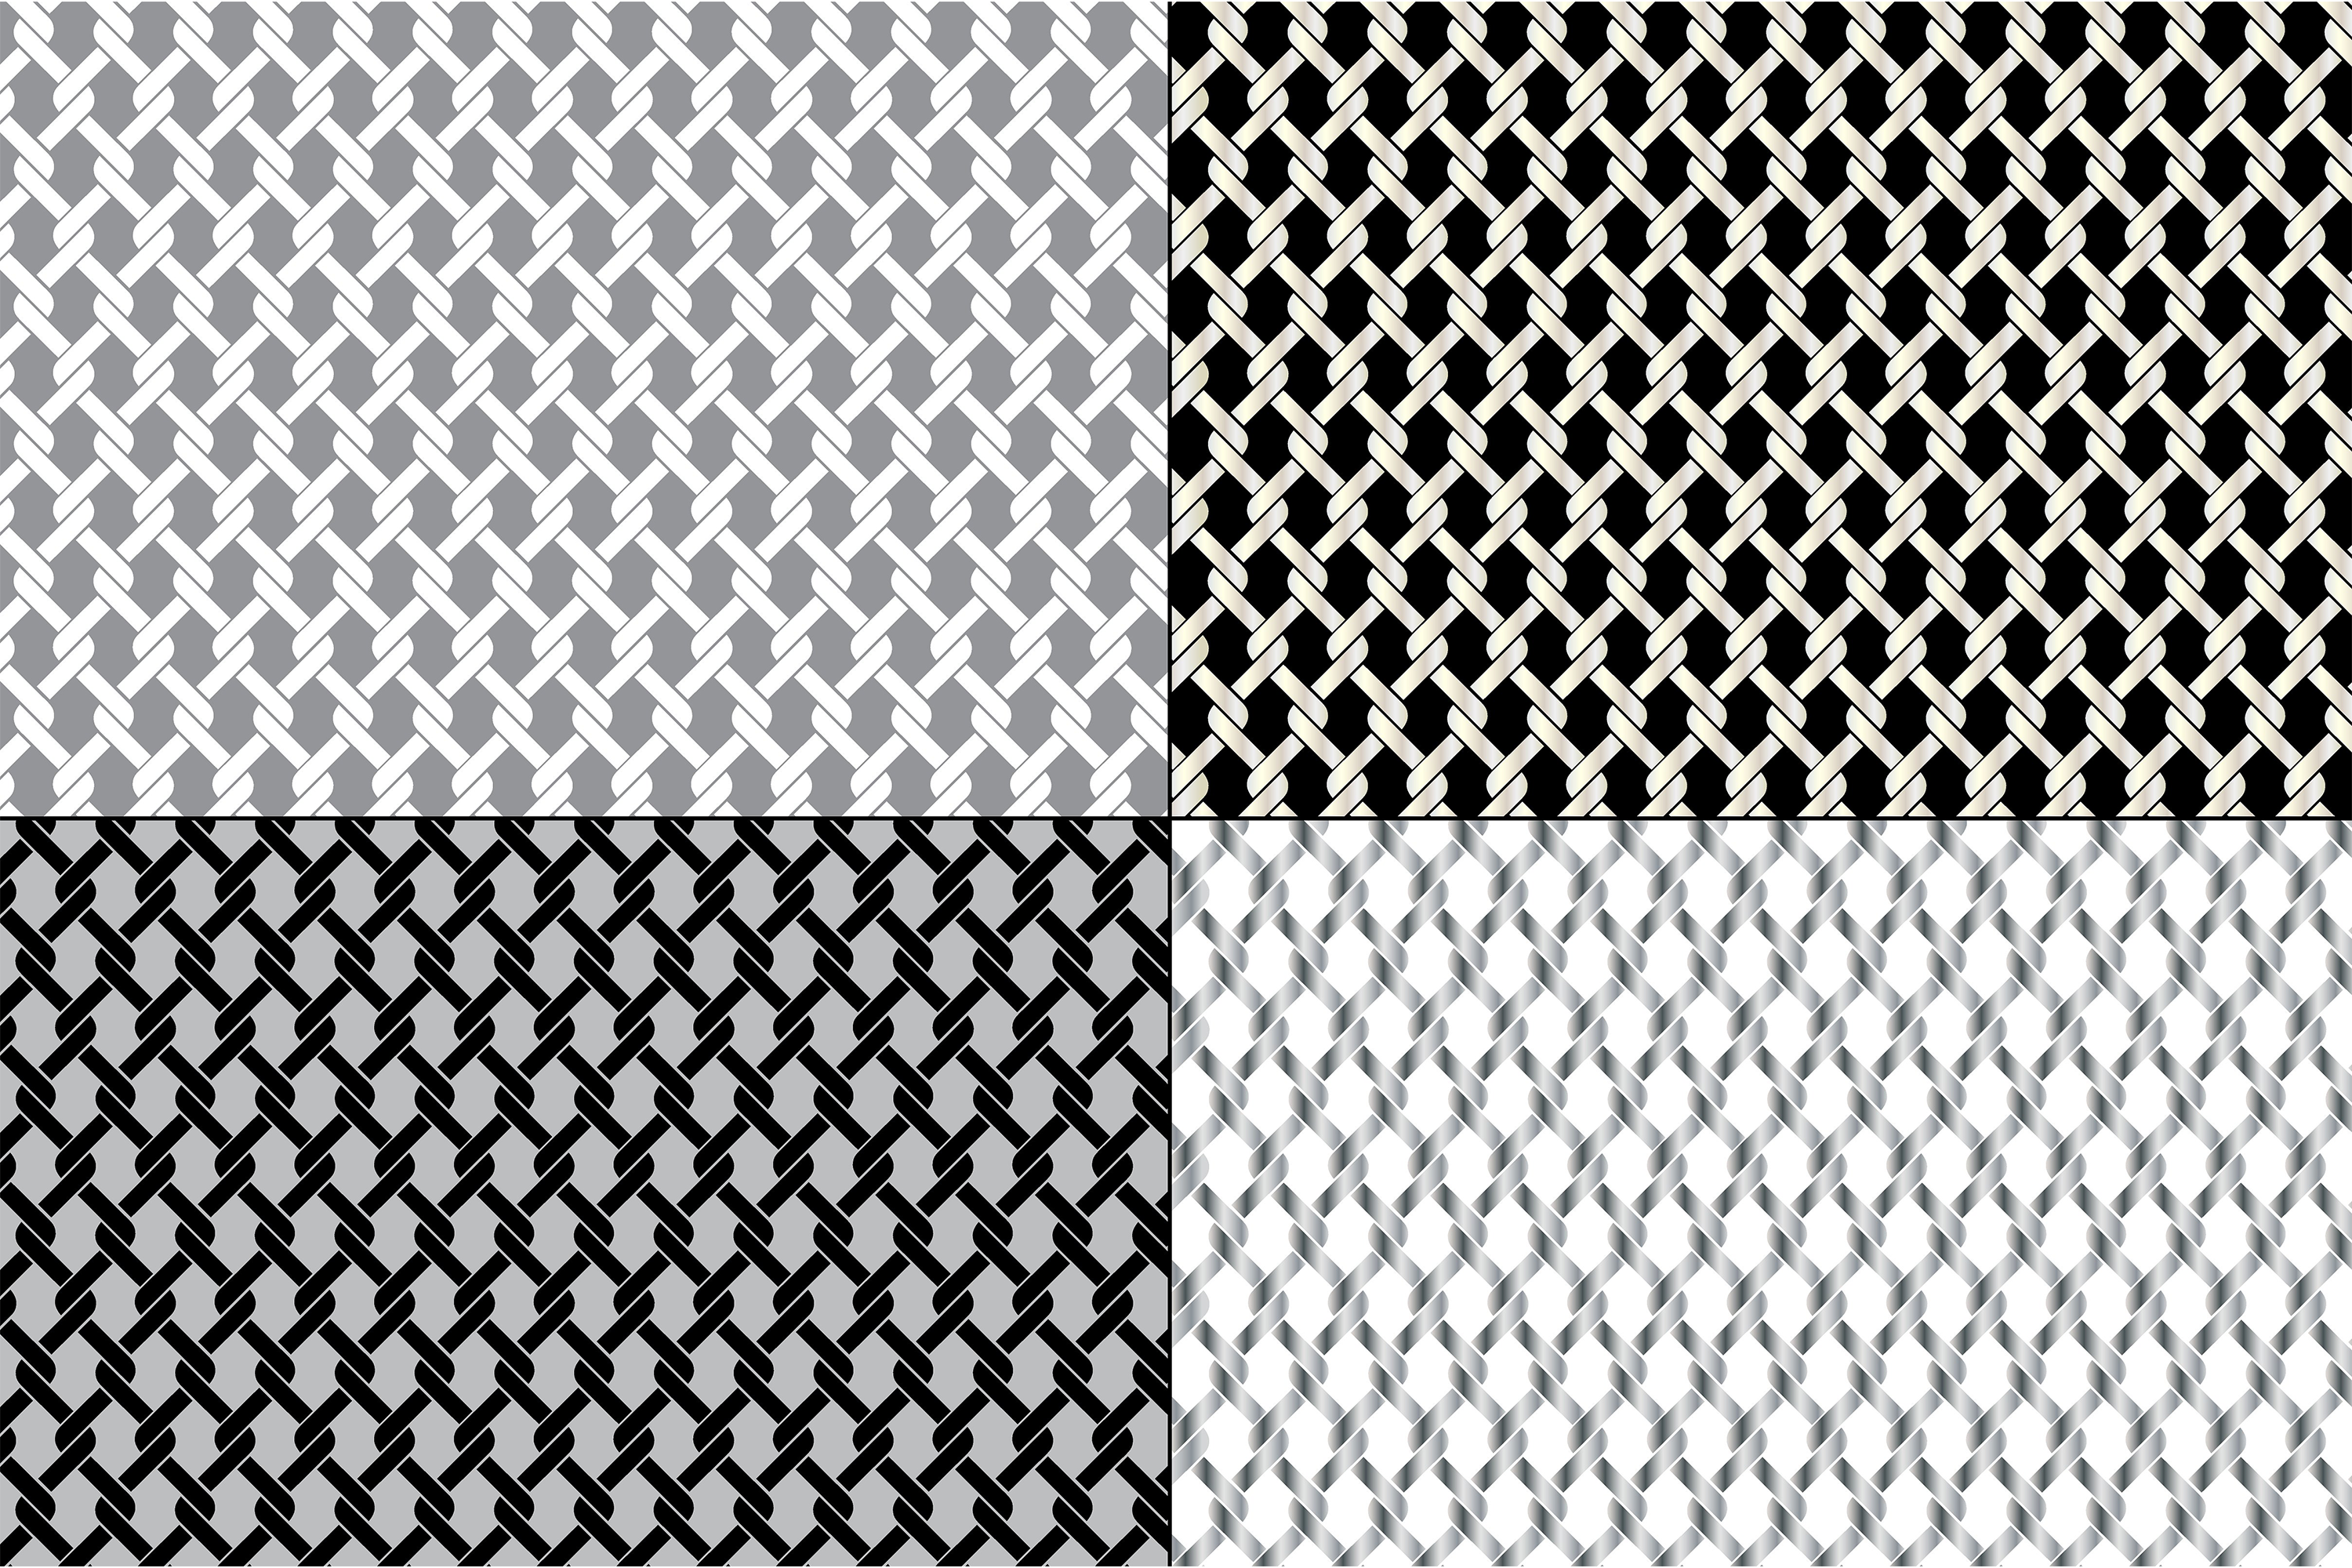 Chainlink Patterns example image 3